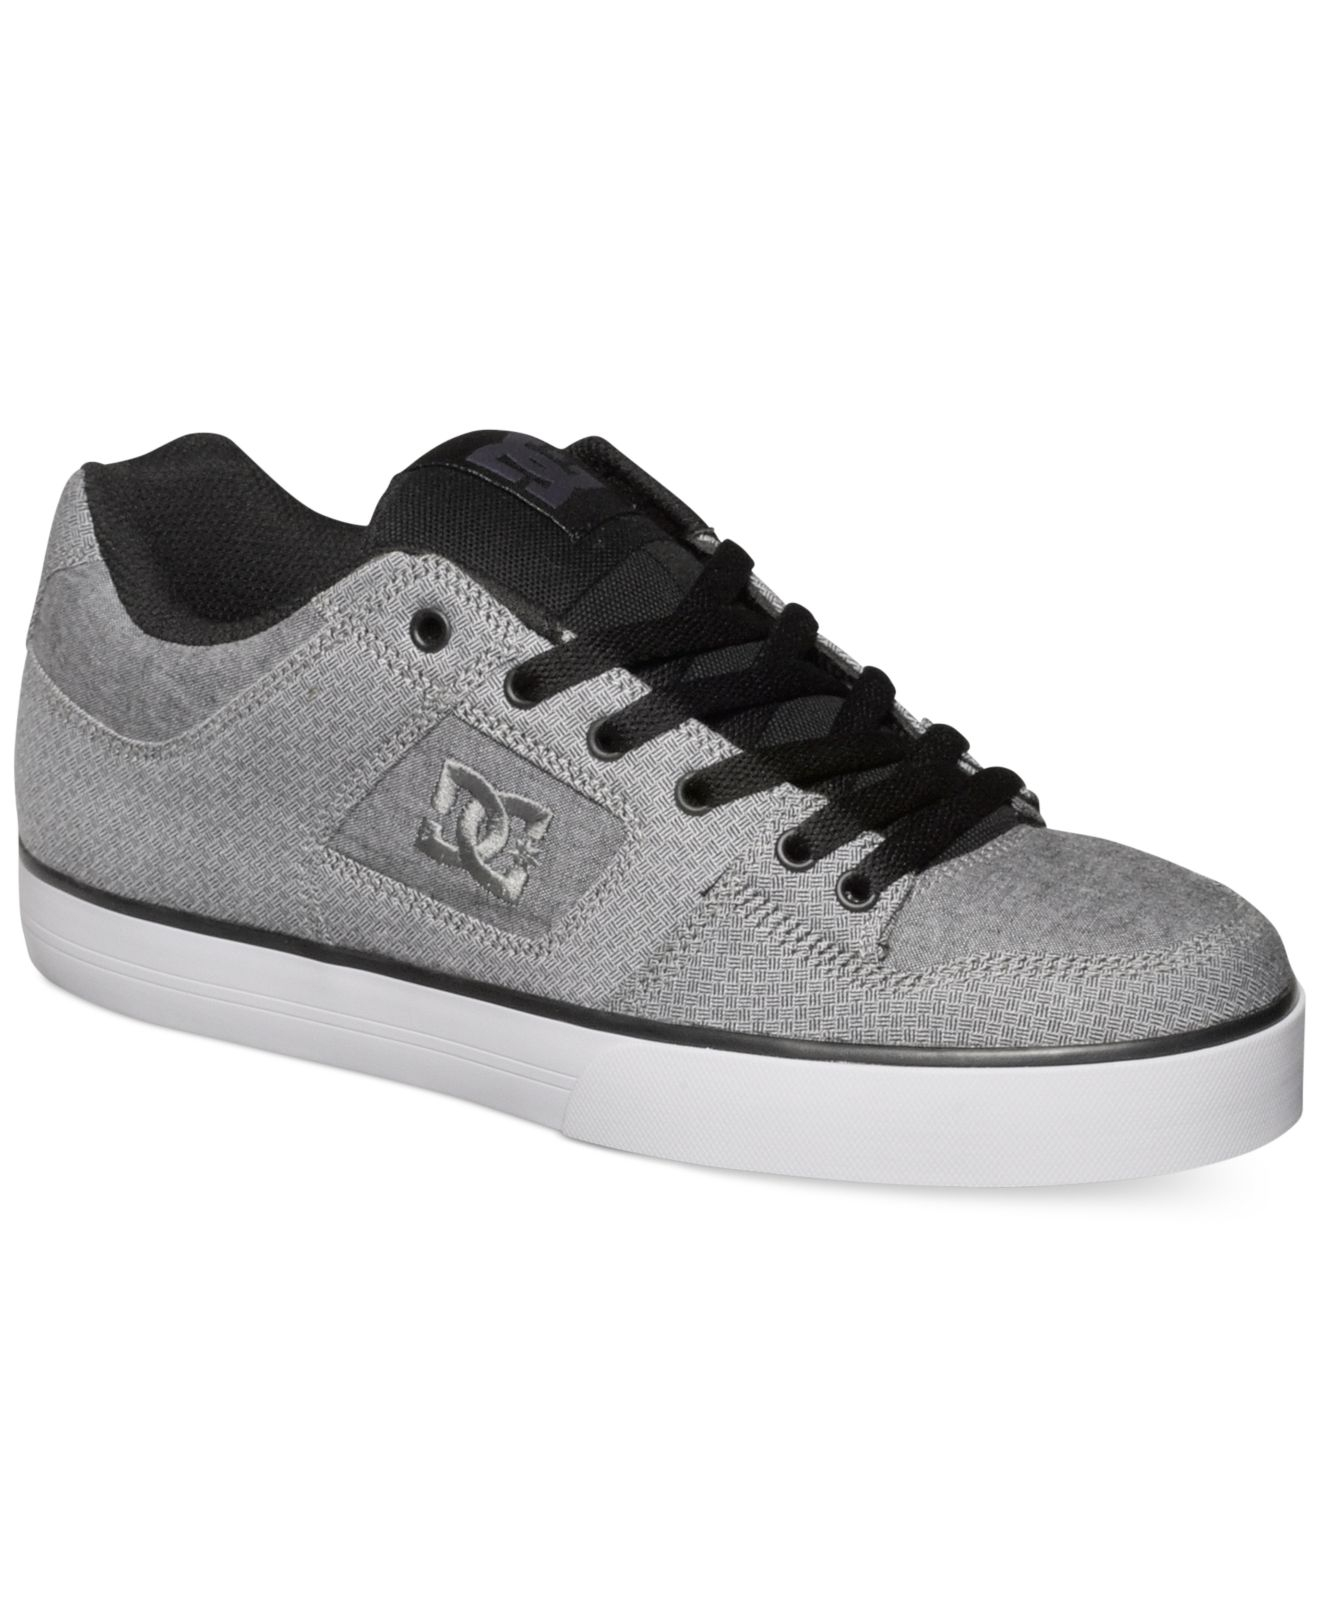 lyst dc shoes pure tx se sneakers in gray for men. Black Bedroom Furniture Sets. Home Design Ideas